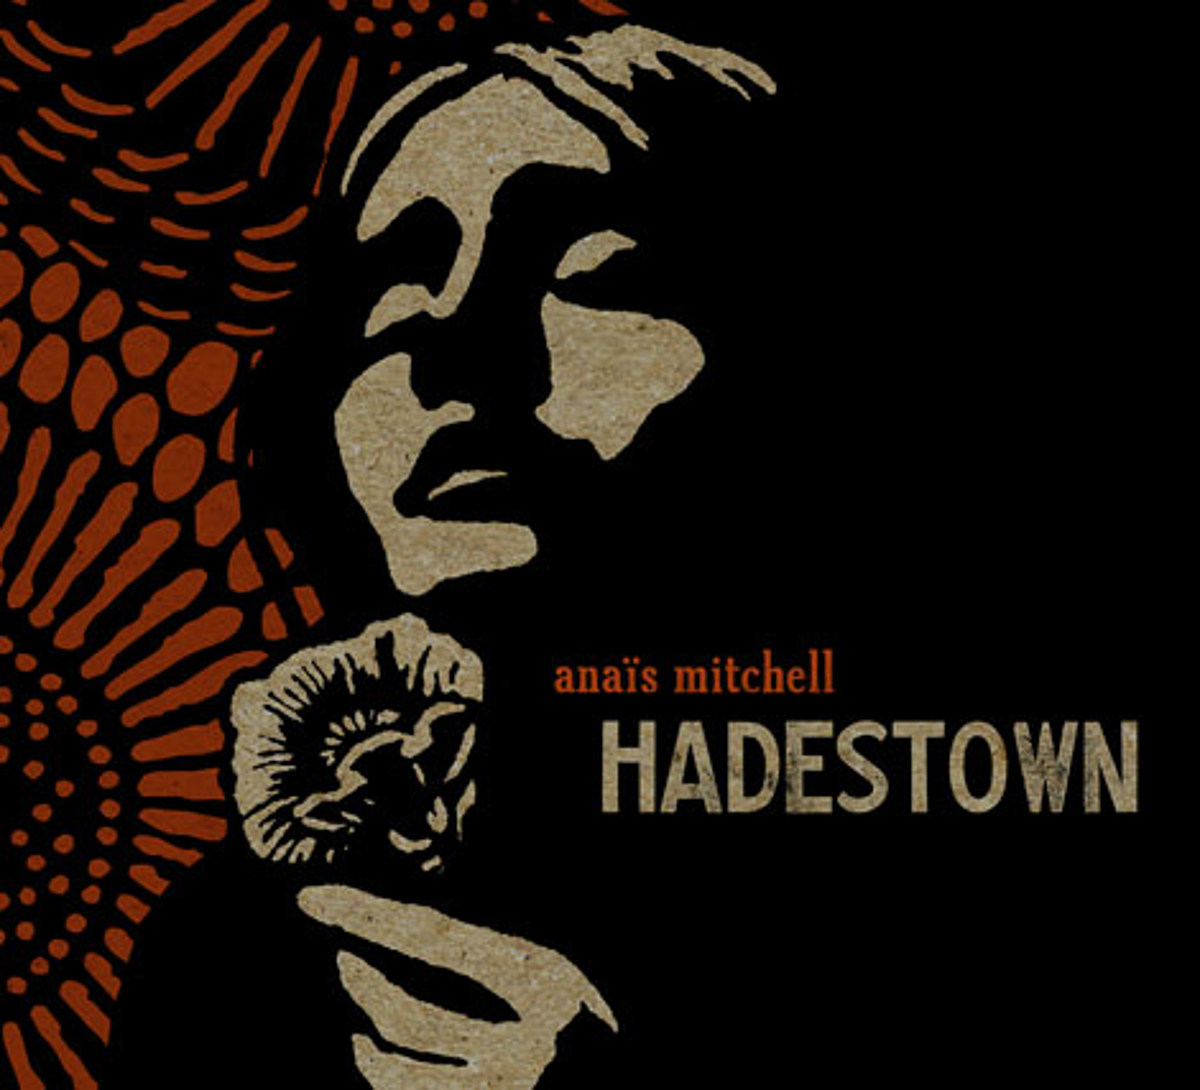 Anais Mitchell Playing Shows Releasing Hadestown